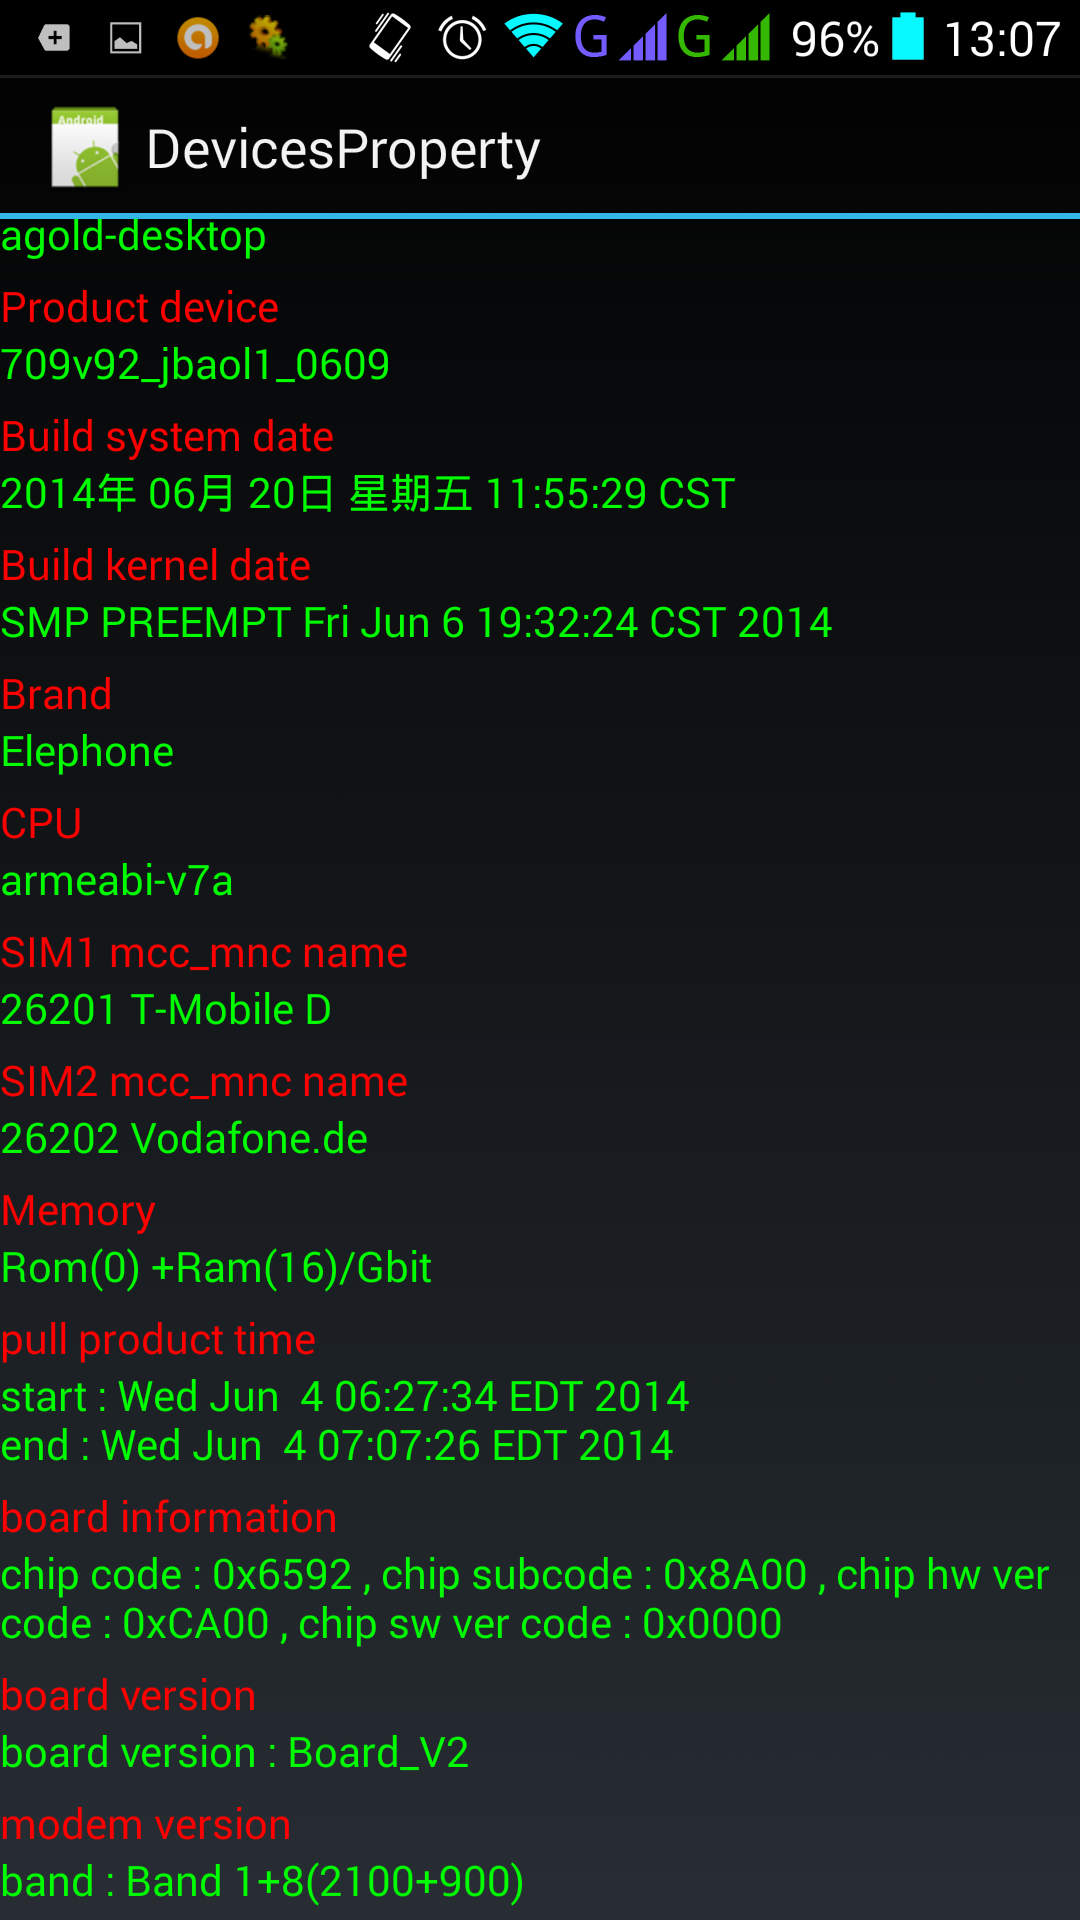 Screenshot_2014-07-19-13-07-39.png